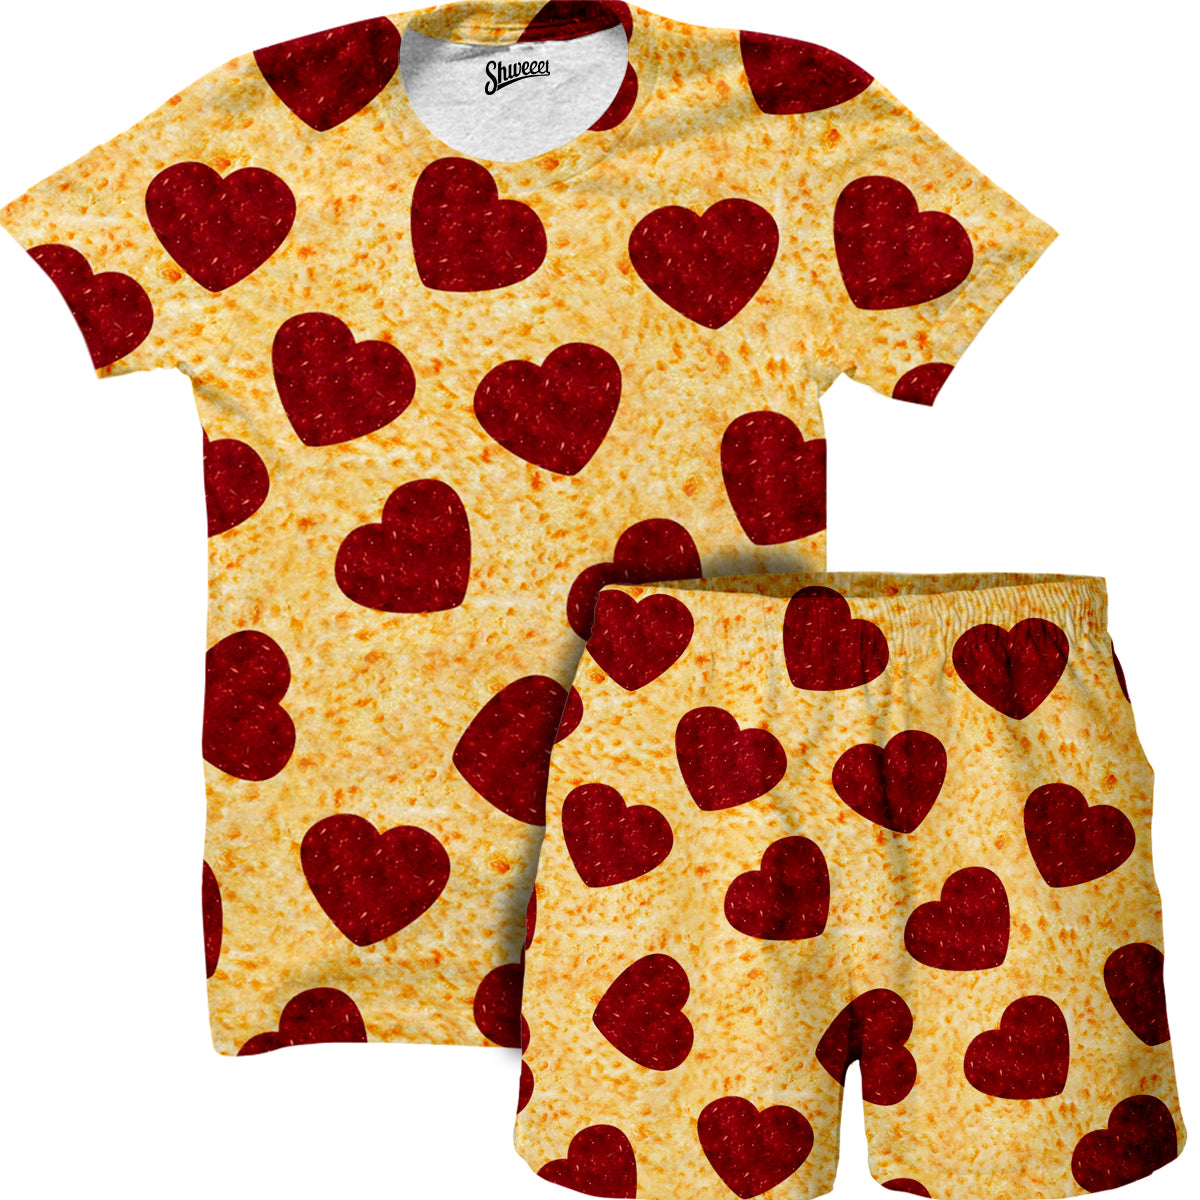 Heart Toppings Shirt and Shorts Combo